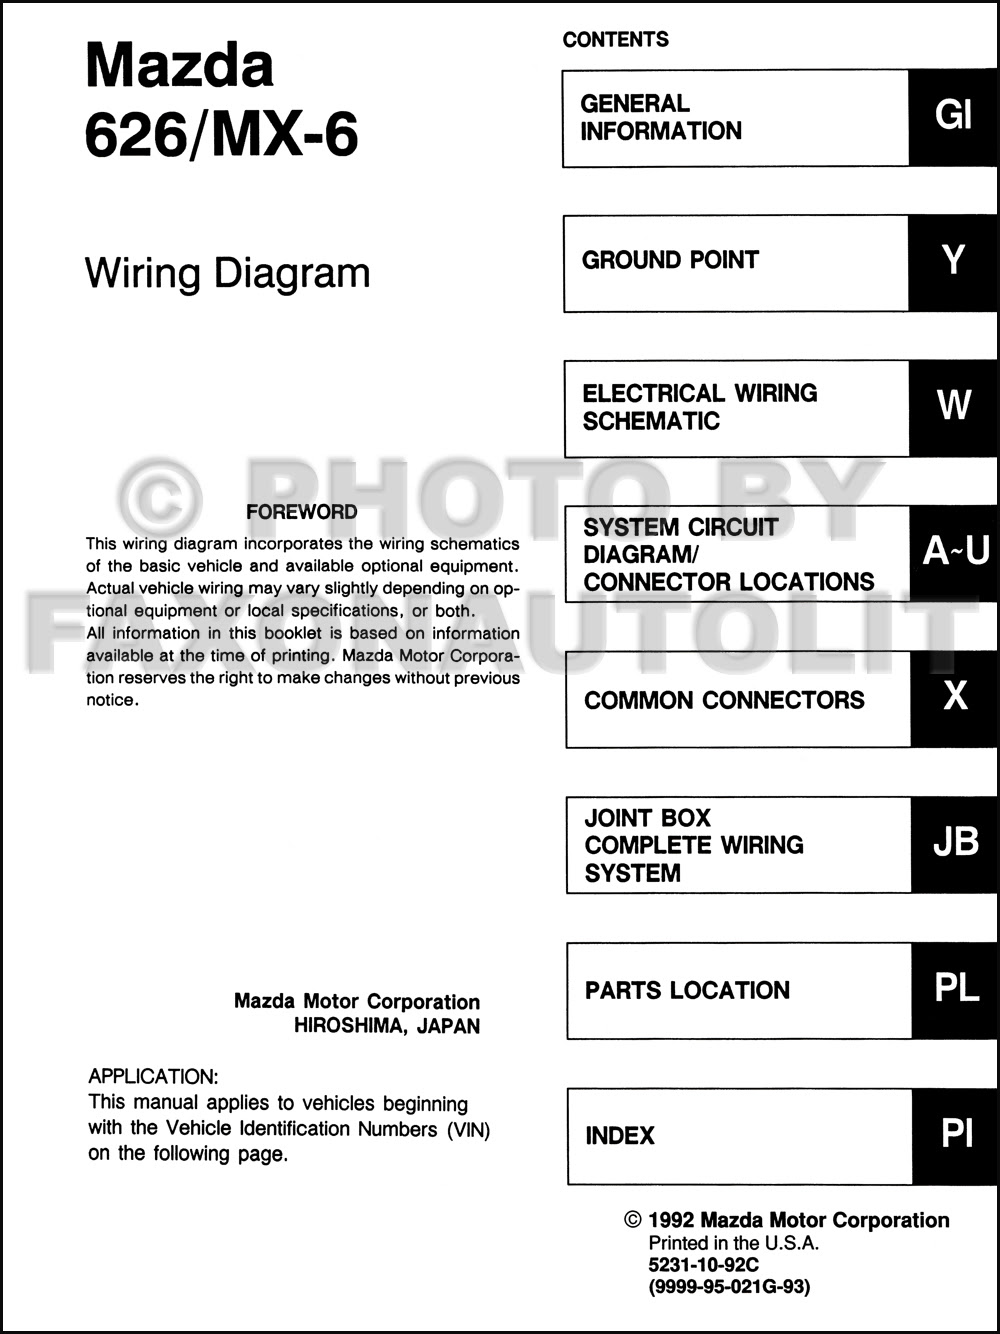 2000 Mazda 626 Radio Wiring Diagram - Wiring Diagram